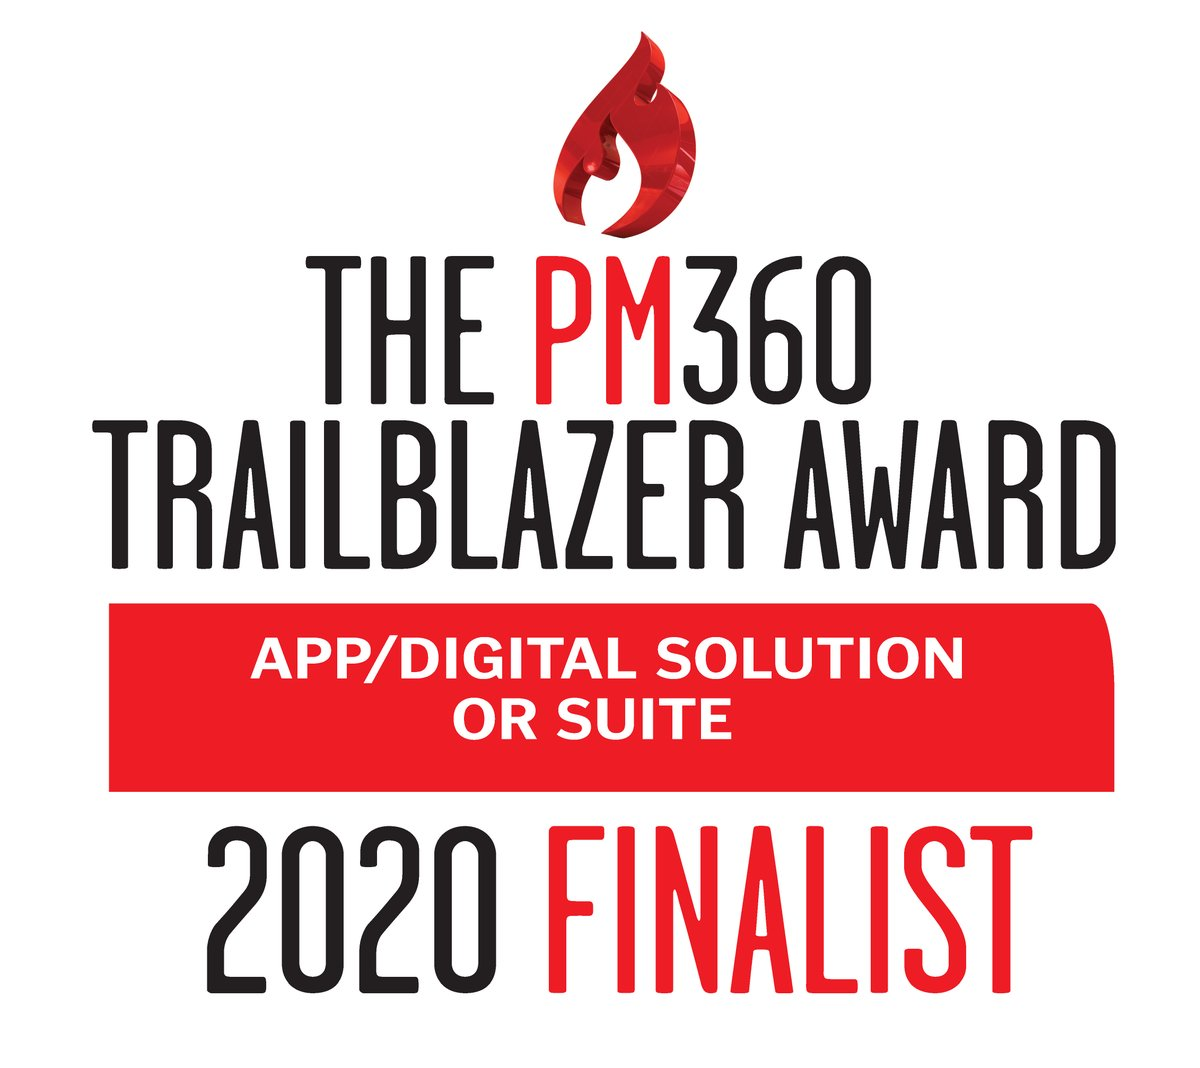 Outstanding initiatives hit the #pharmaceutical market in 2020! We are proud to be nominated in the two categories for #PM360TrailblazerAwards: INITIATIVE: APP/DIGITAL SOLUTION OR SUITE and the COMPANY OF THE YEAR: ADVERTISING AGENCY https://t.co/3XnnyMR2UZ https://t.co/yGcaf4DHze